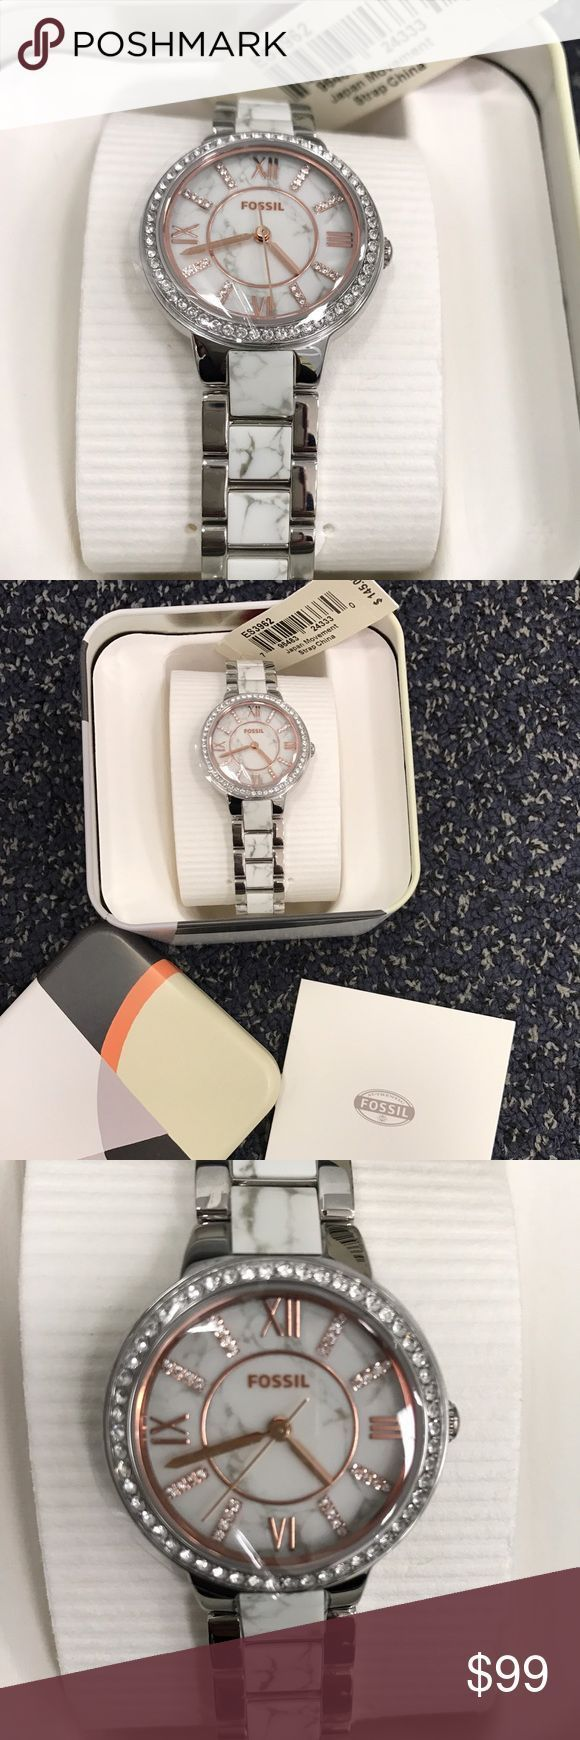 awesome Montre pour femme : awesome Montre pour femme : SOLD OUT ❌ Brand new Fossil marble bracelet watch ...